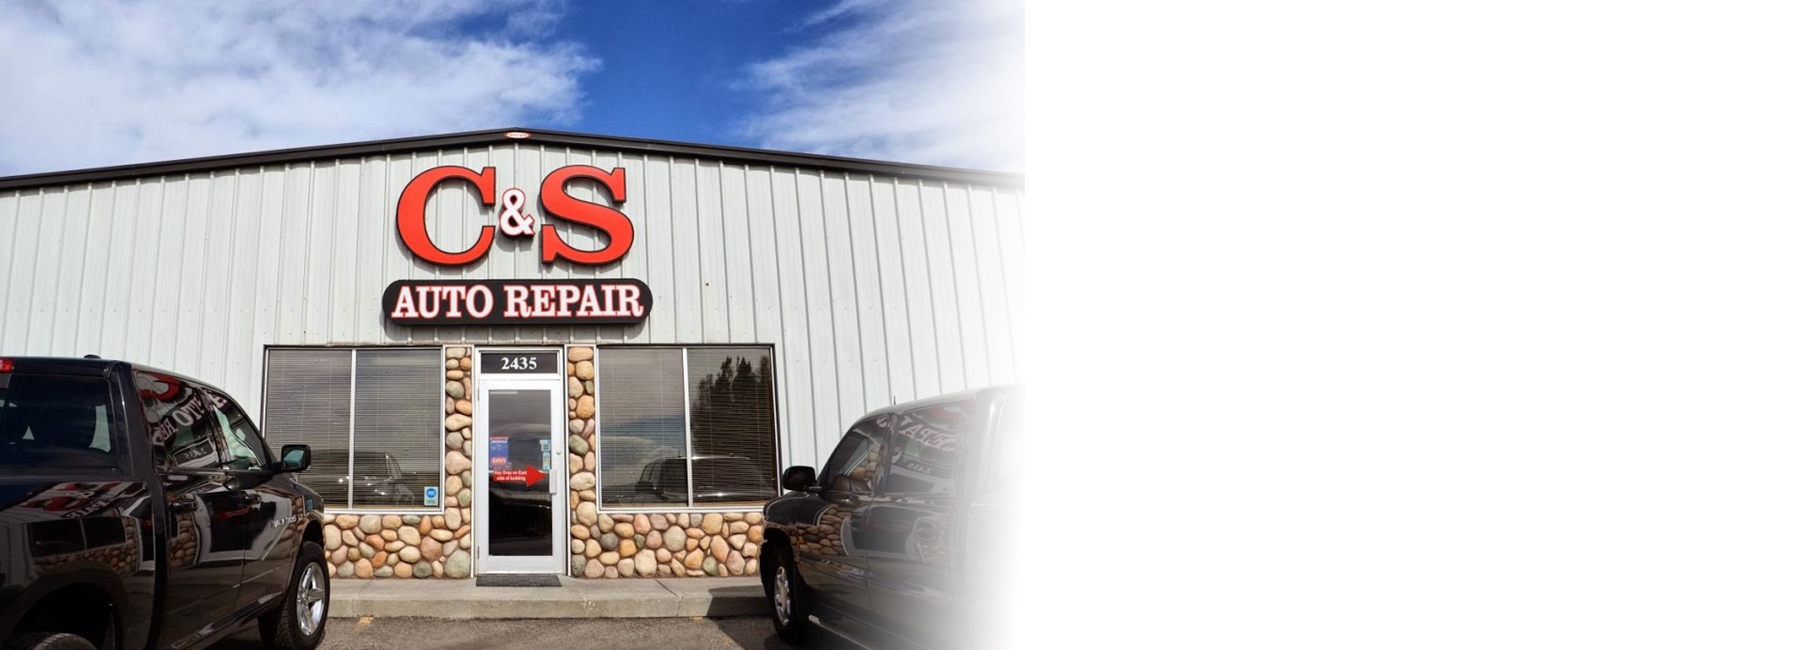 C&S Auto Repair Facility - Idaho Falls Car Repair